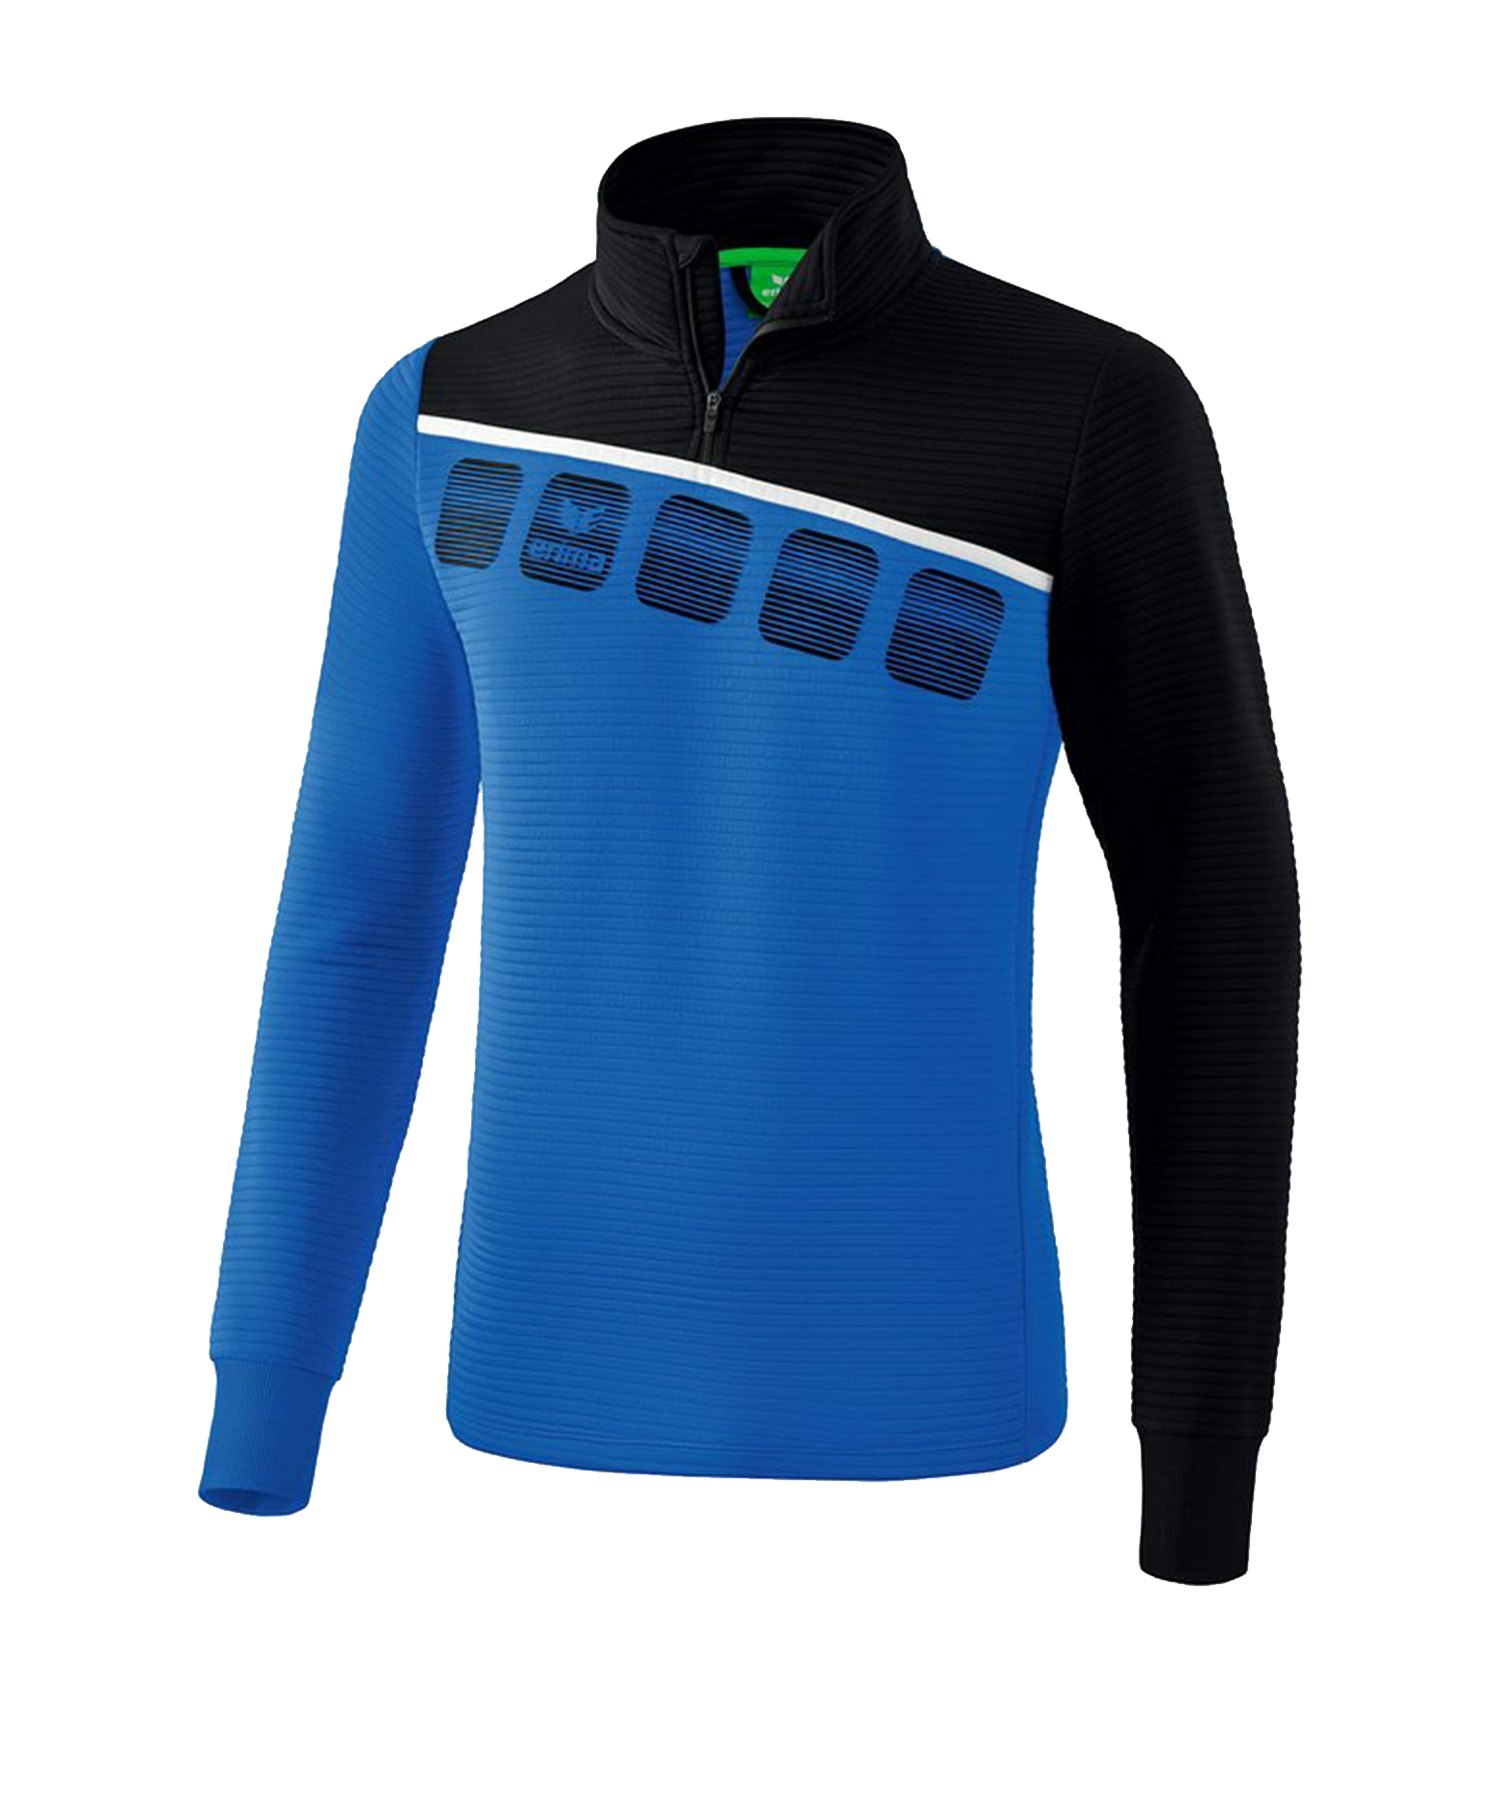 Erima 5-C Trainingstop Blau Schwarz - Blau